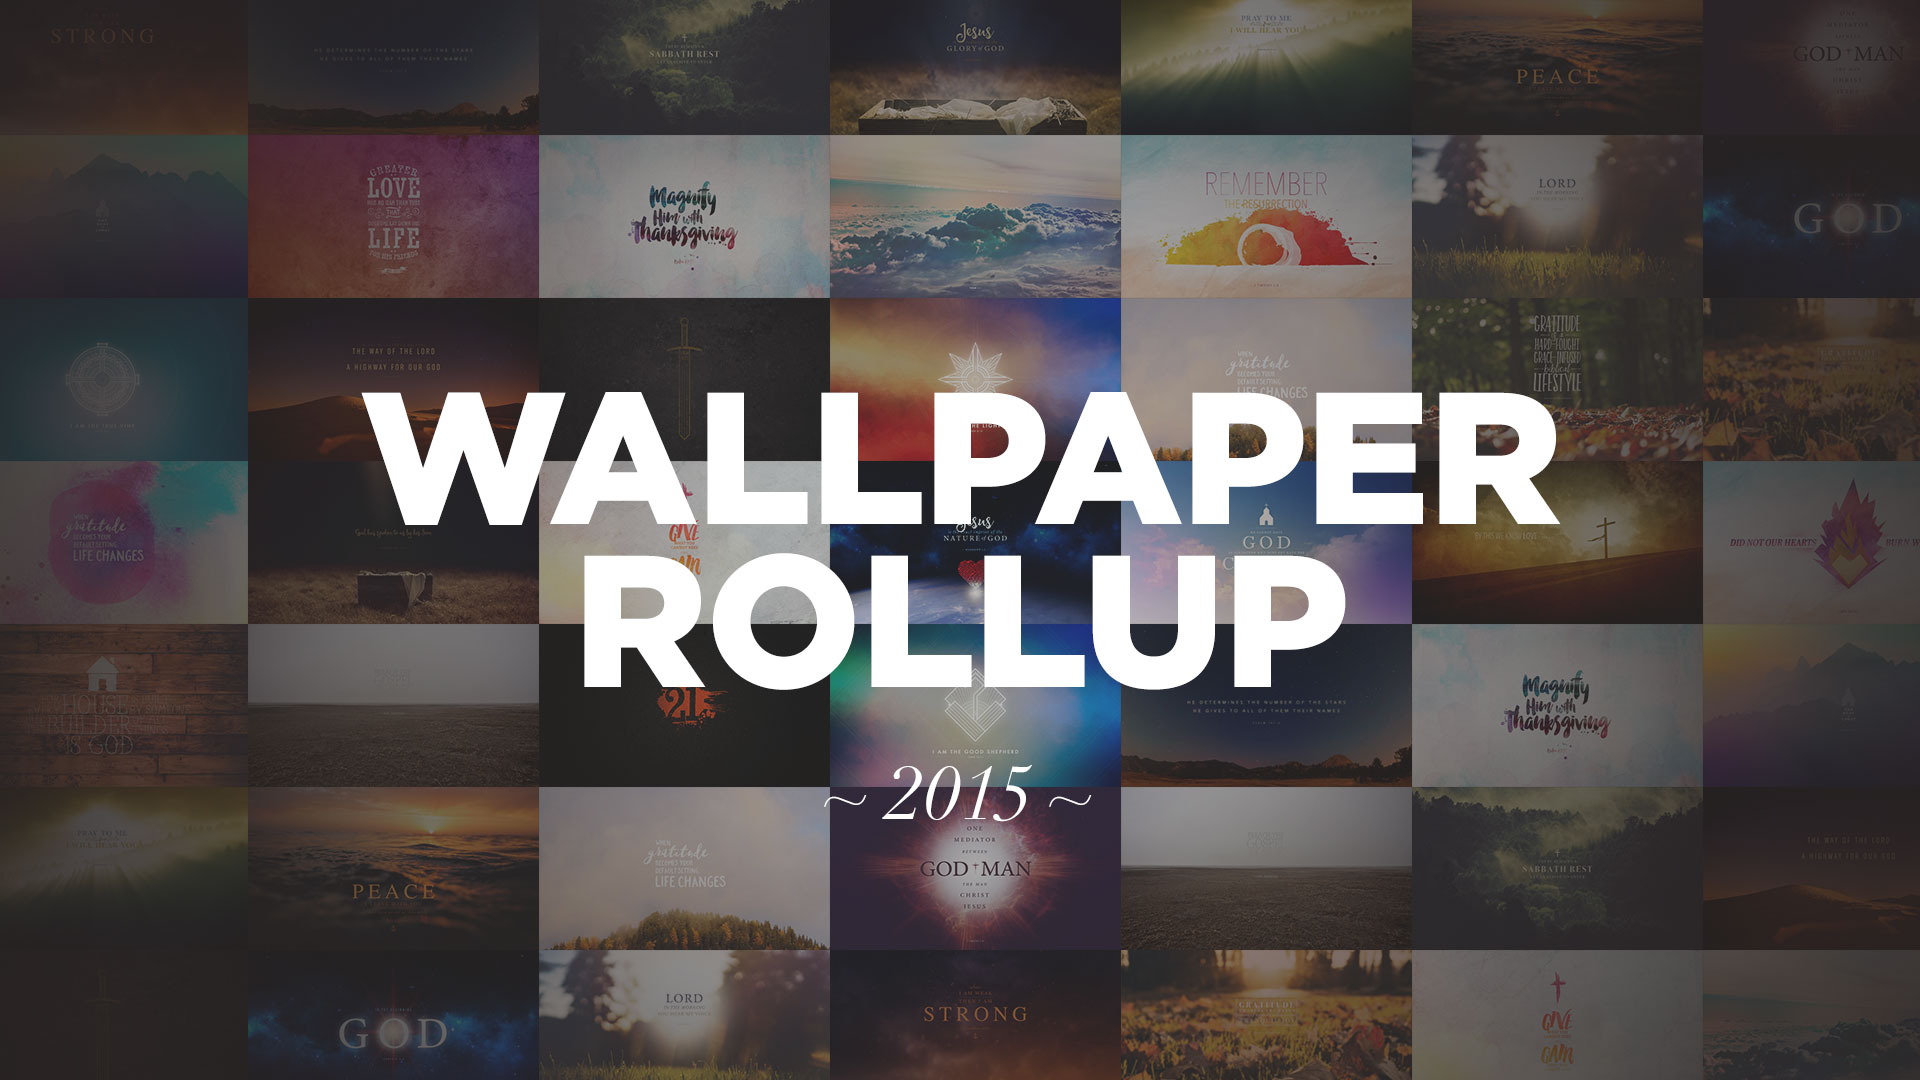 Wallpaper Rollup 2015 Jacob Abshire